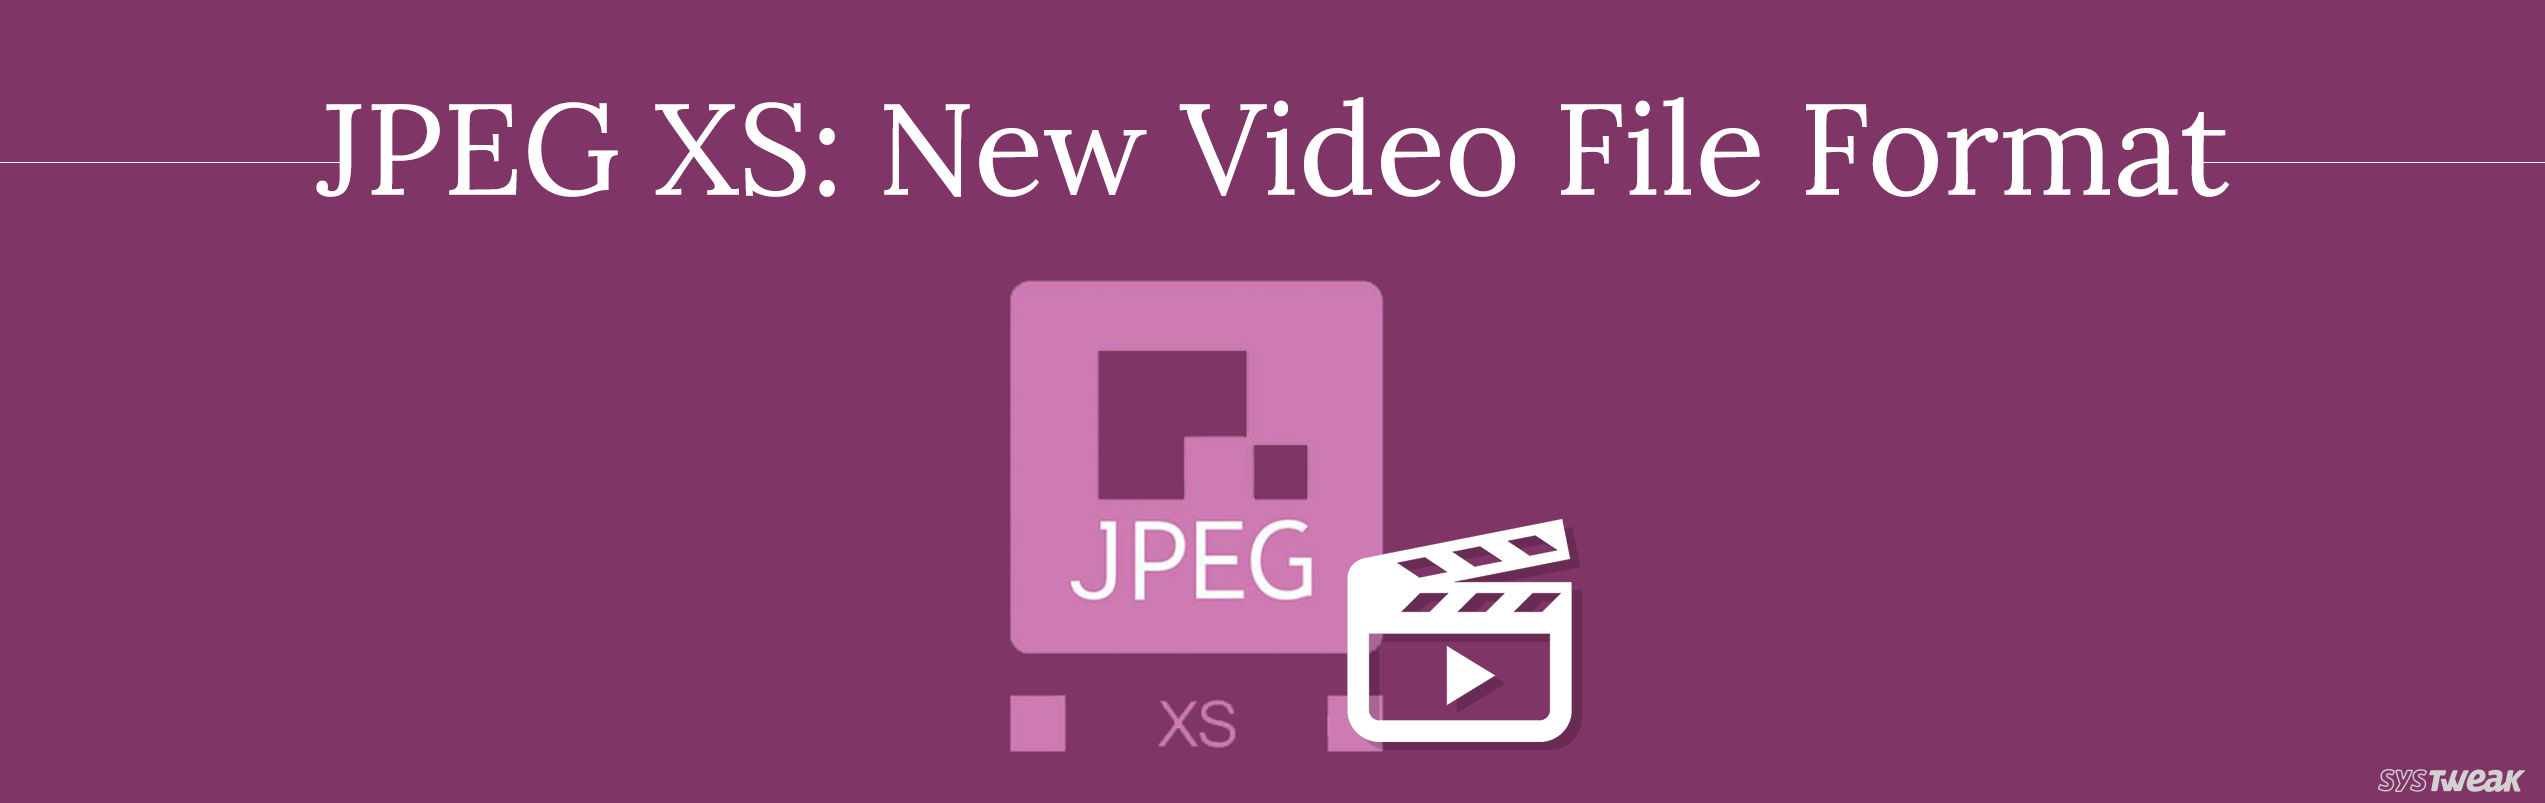 Introduction To JPEG XS: A New VR Video Streaming Format